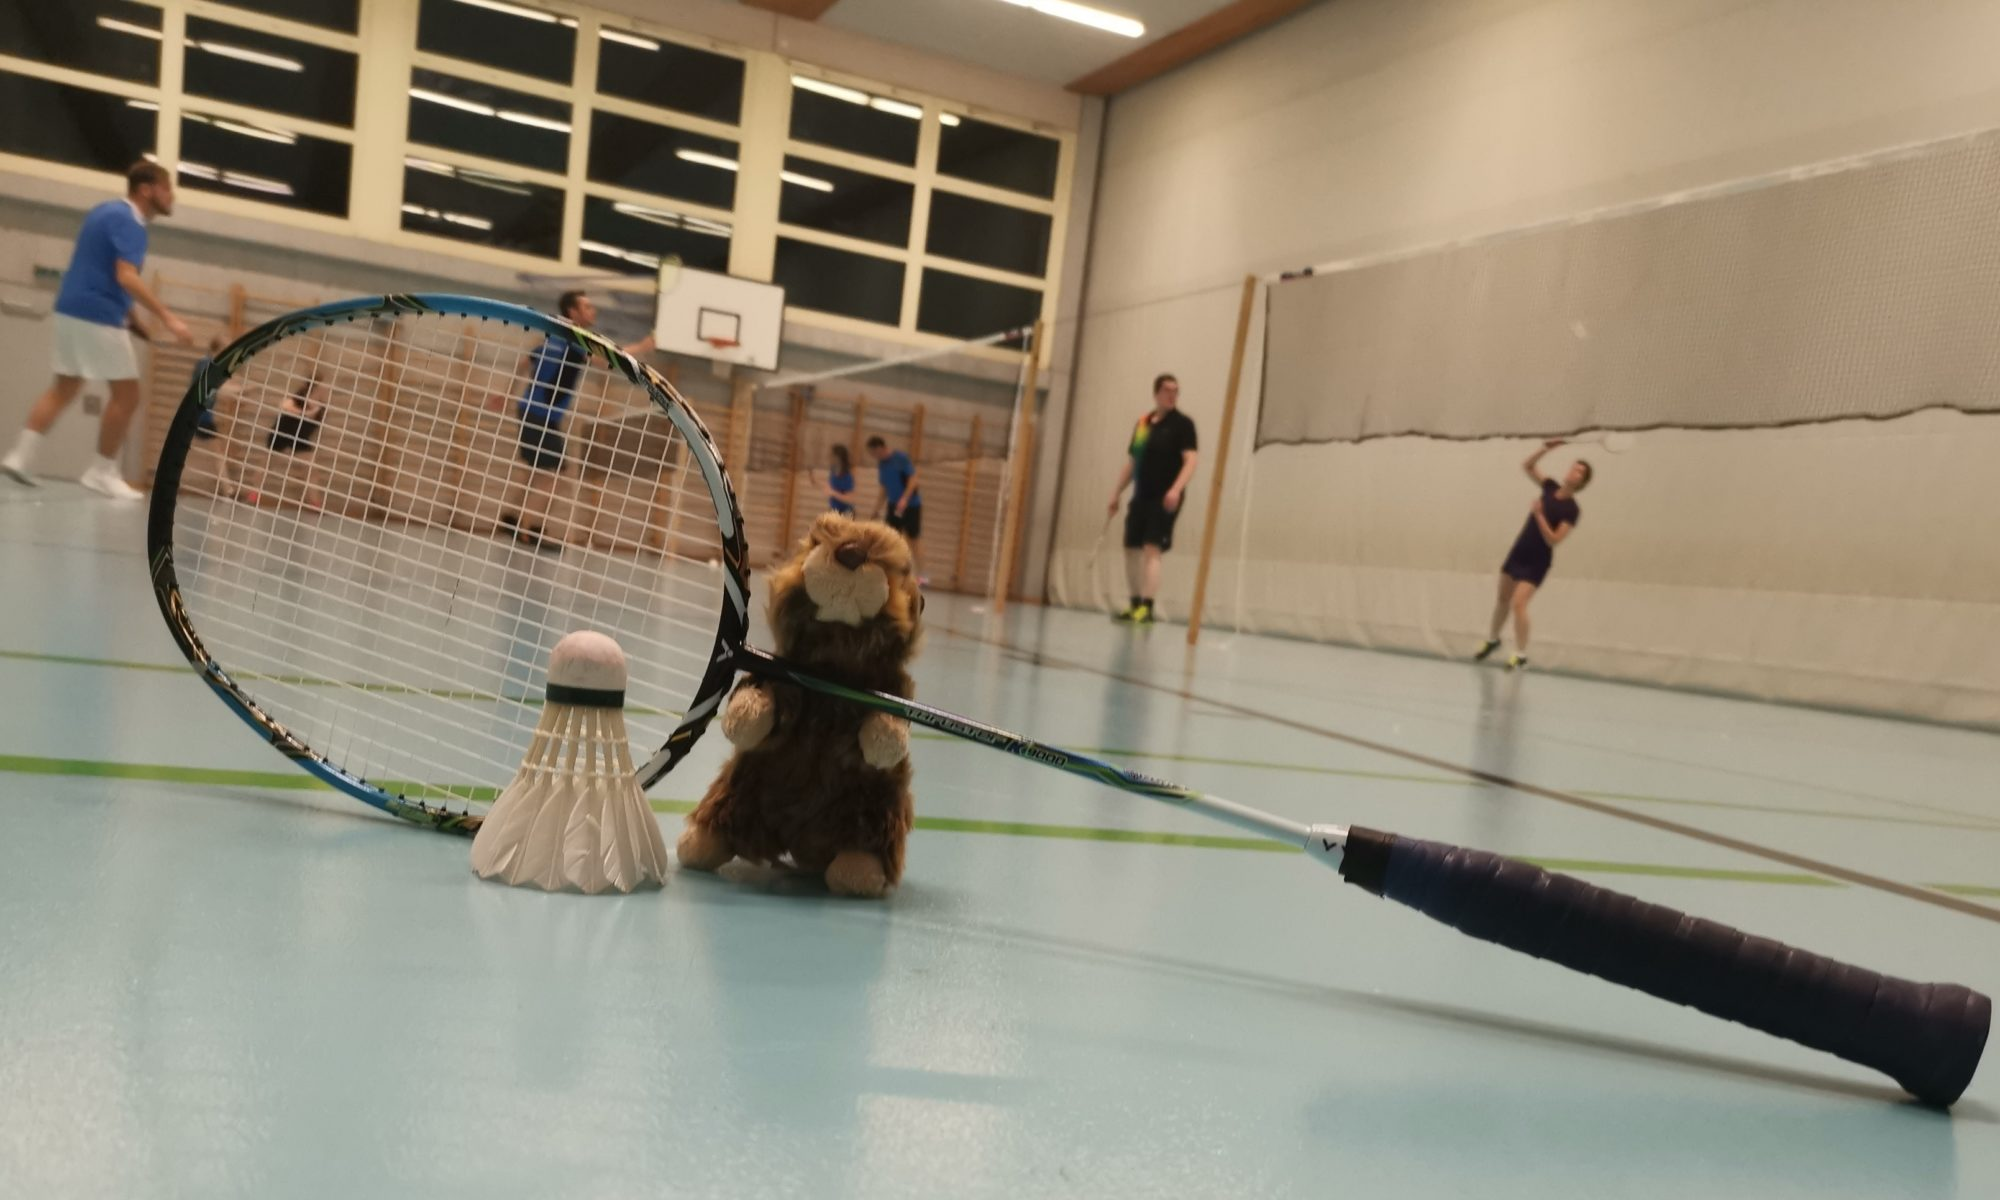 Badminton Club Villmergen